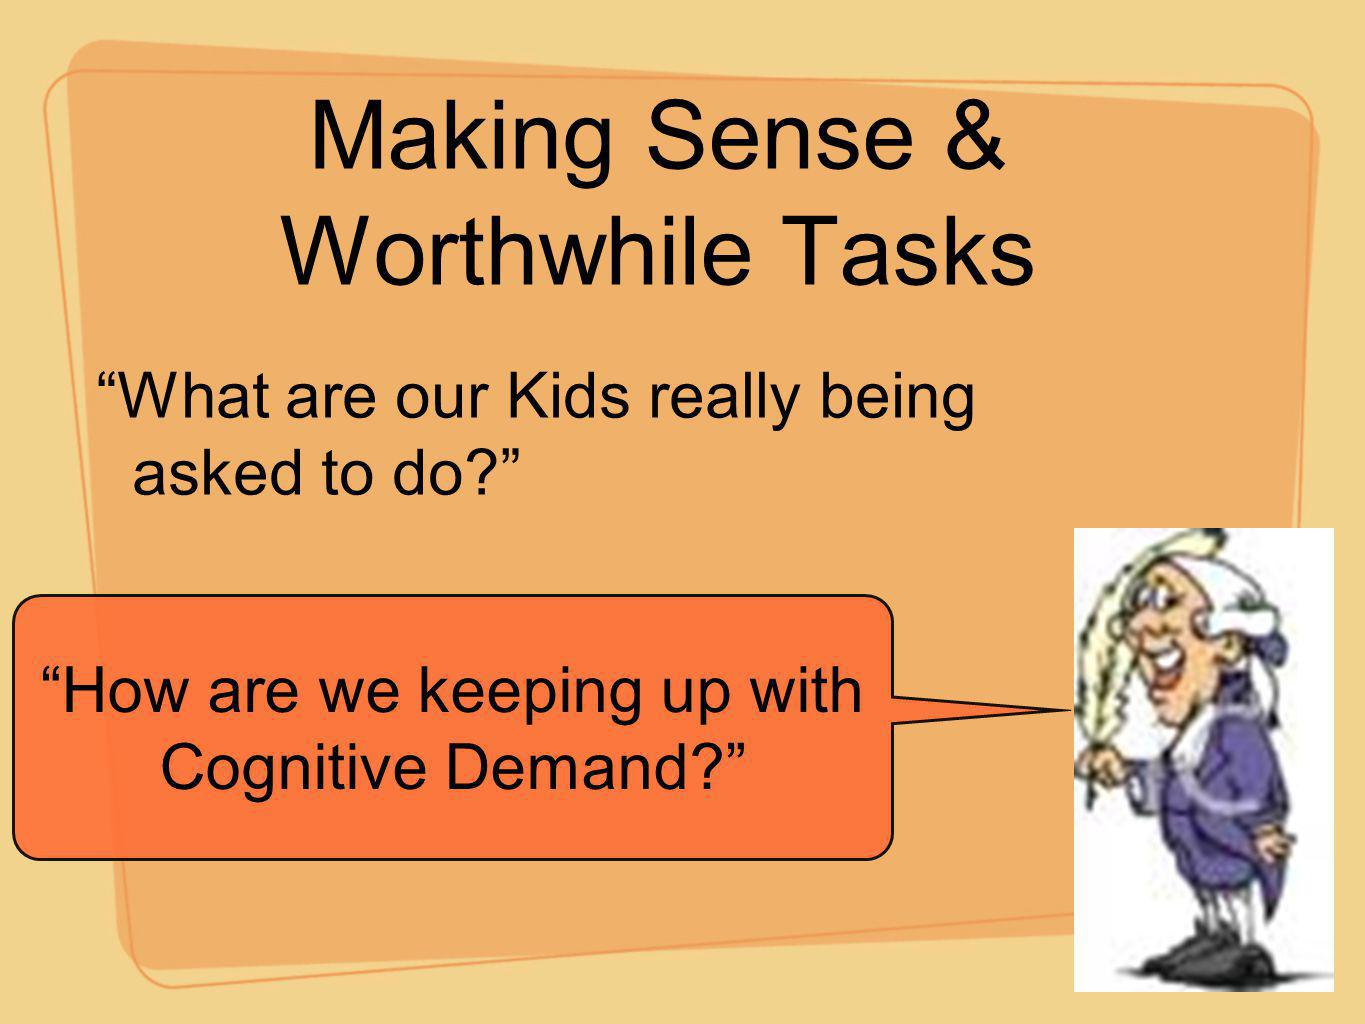 Making Sense & Worthwhile Tasks